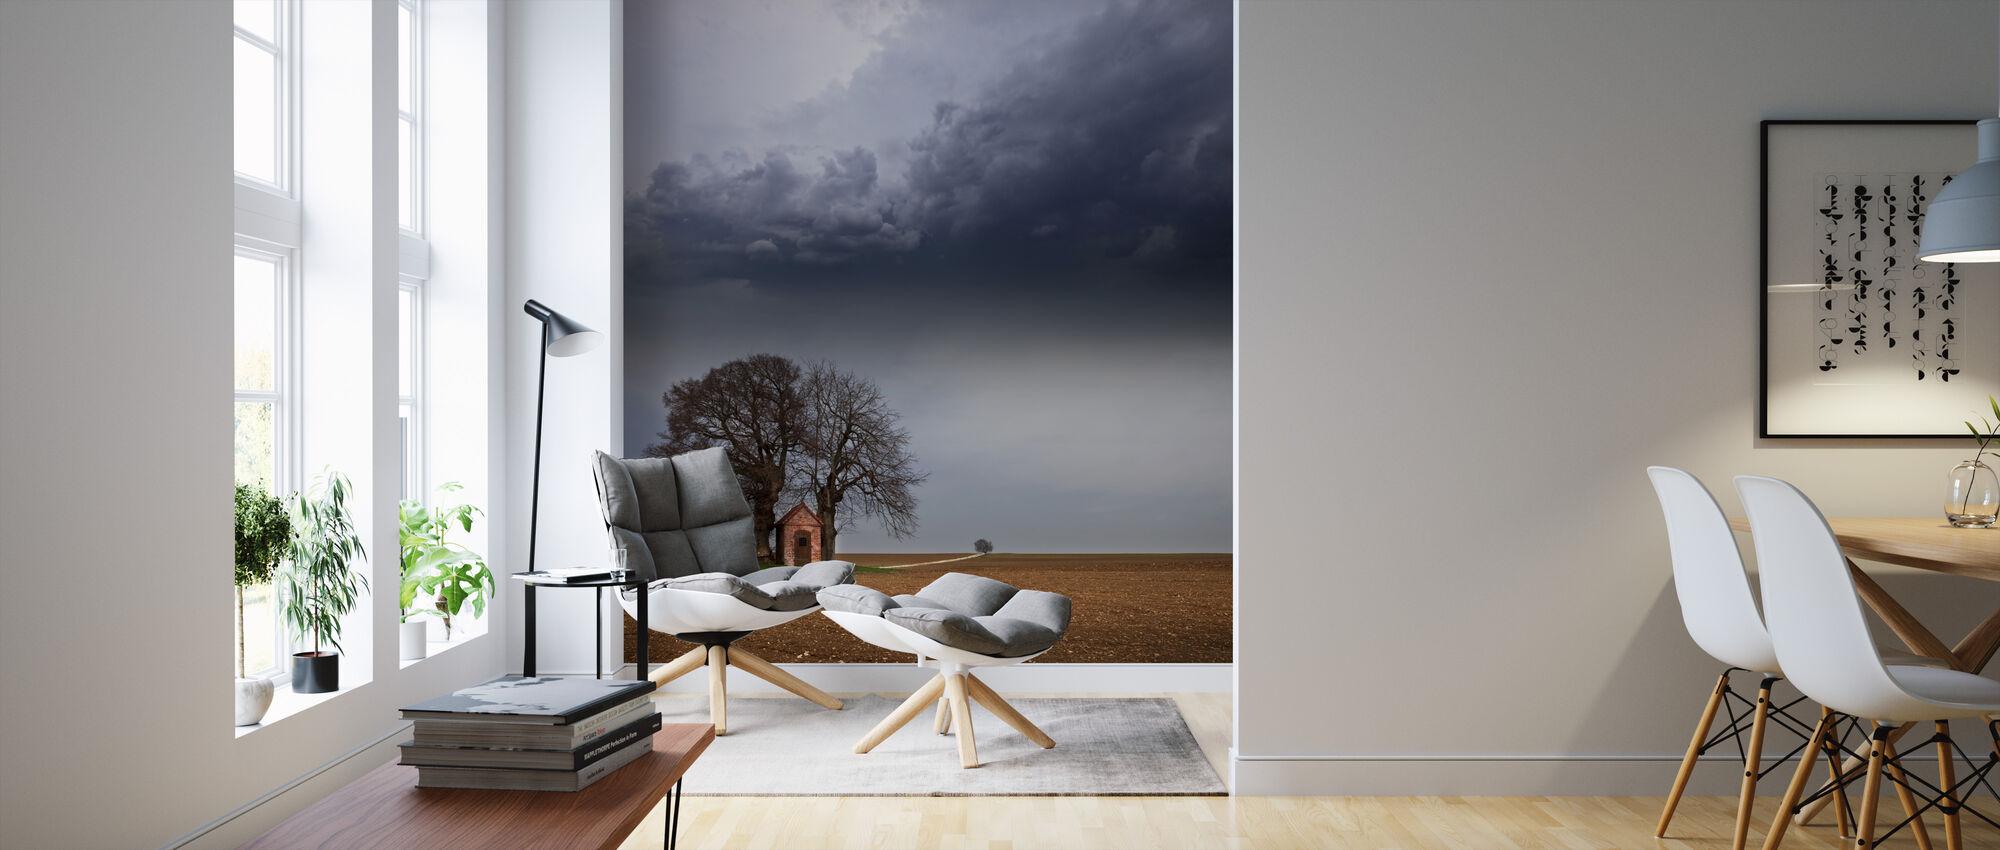 Lonely House - Wallpaper - Living Room